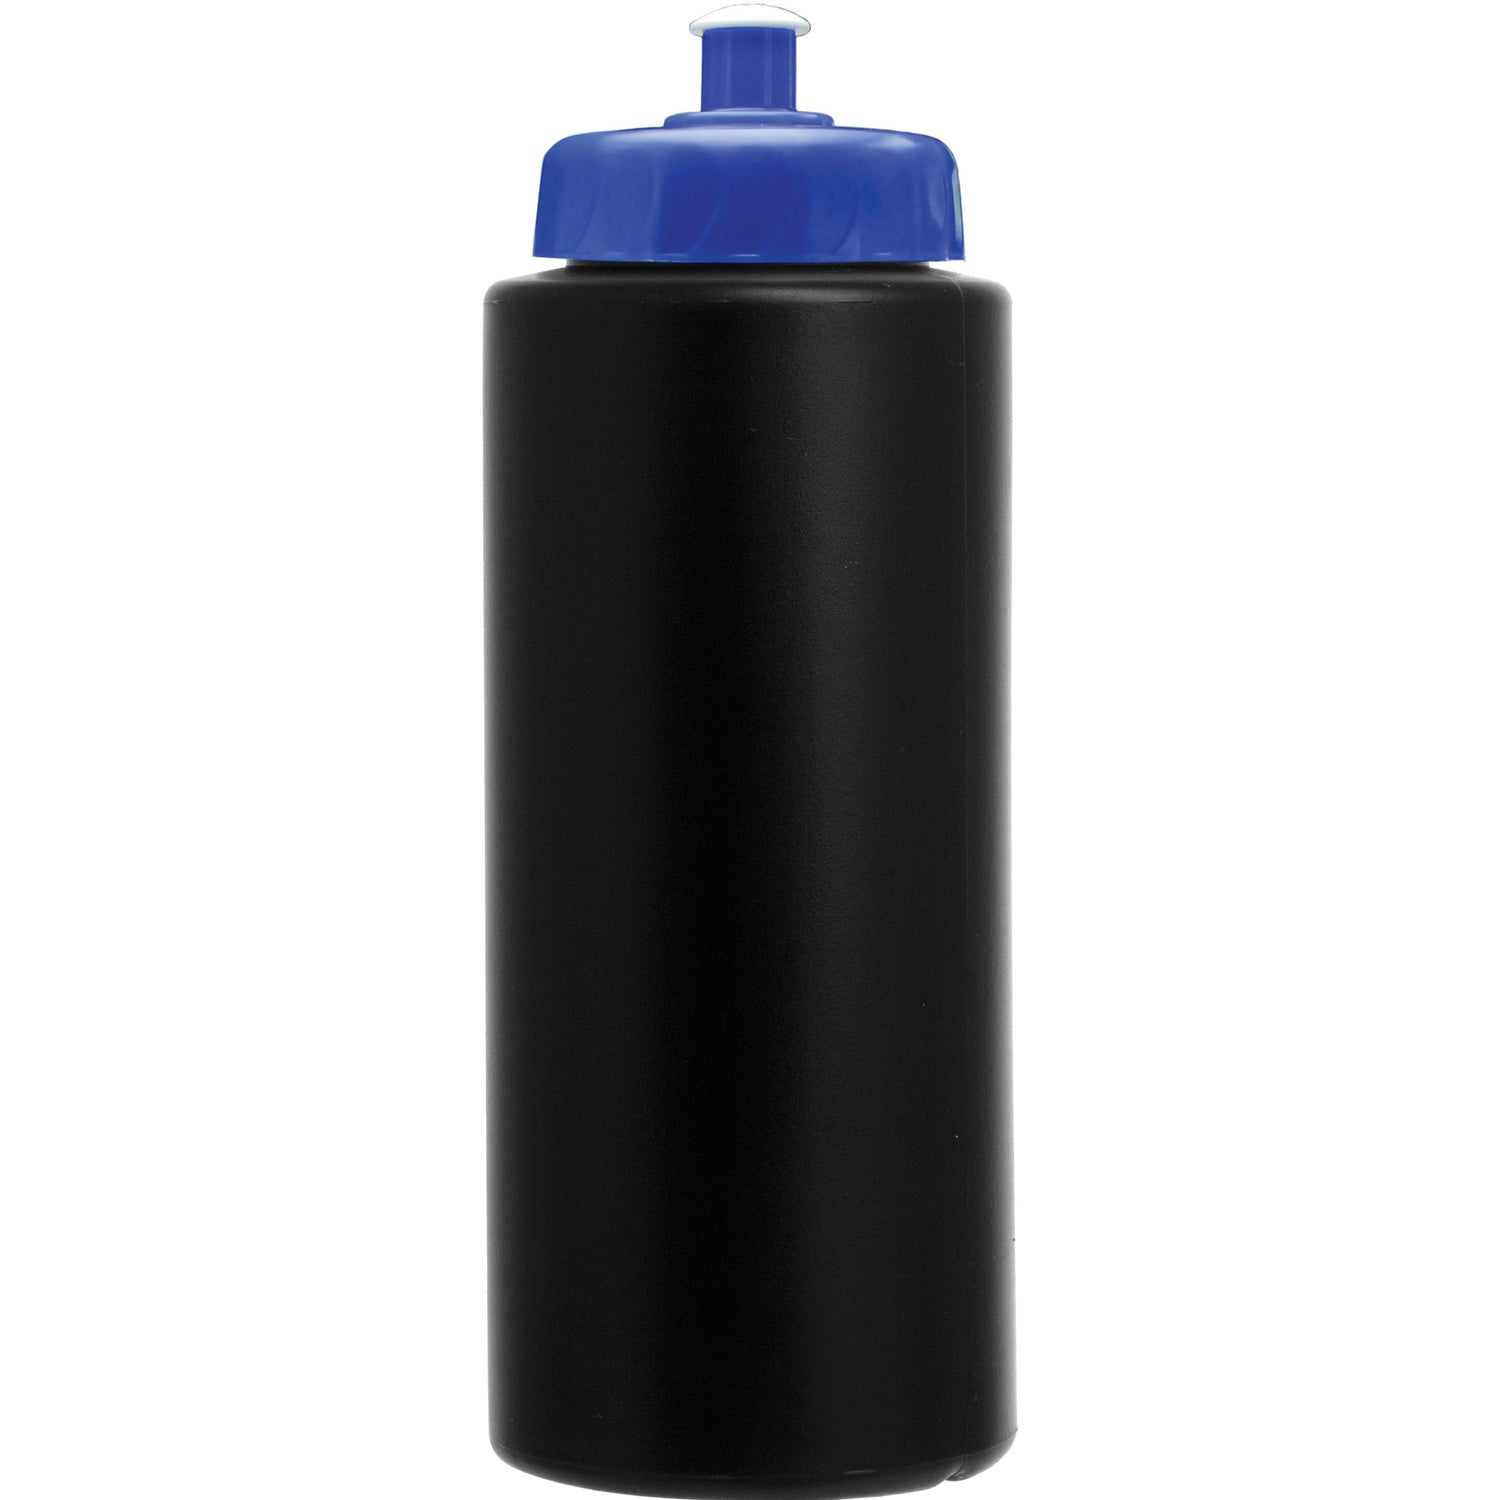 Sports bottle with push pull lid 32 oz personalized for Floor 9 water bottle